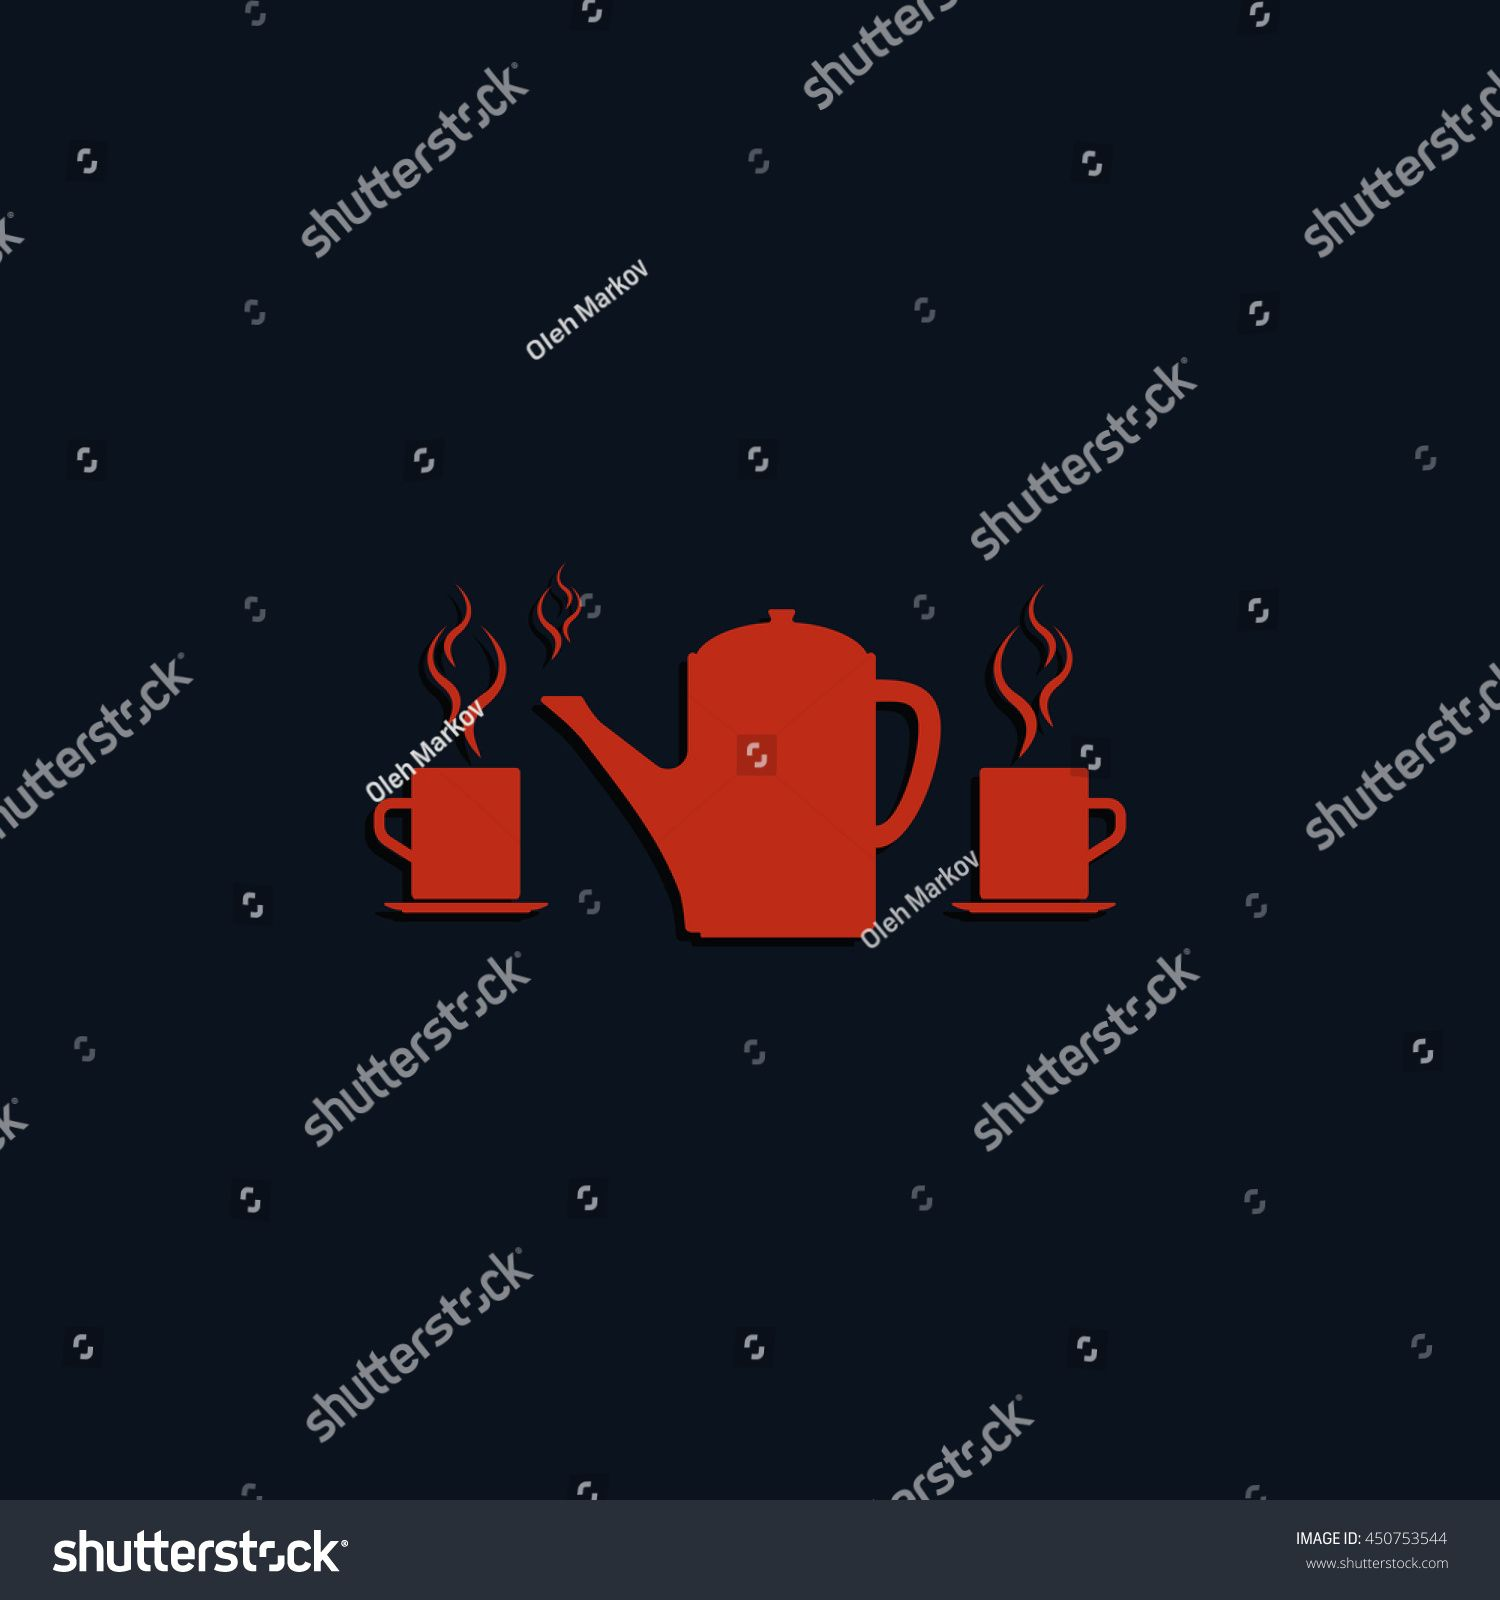 Set of silhouettes teapot and cups. Flat illustration. #Sponsored , #spon, #teapot#silhouettes#Set#illustration